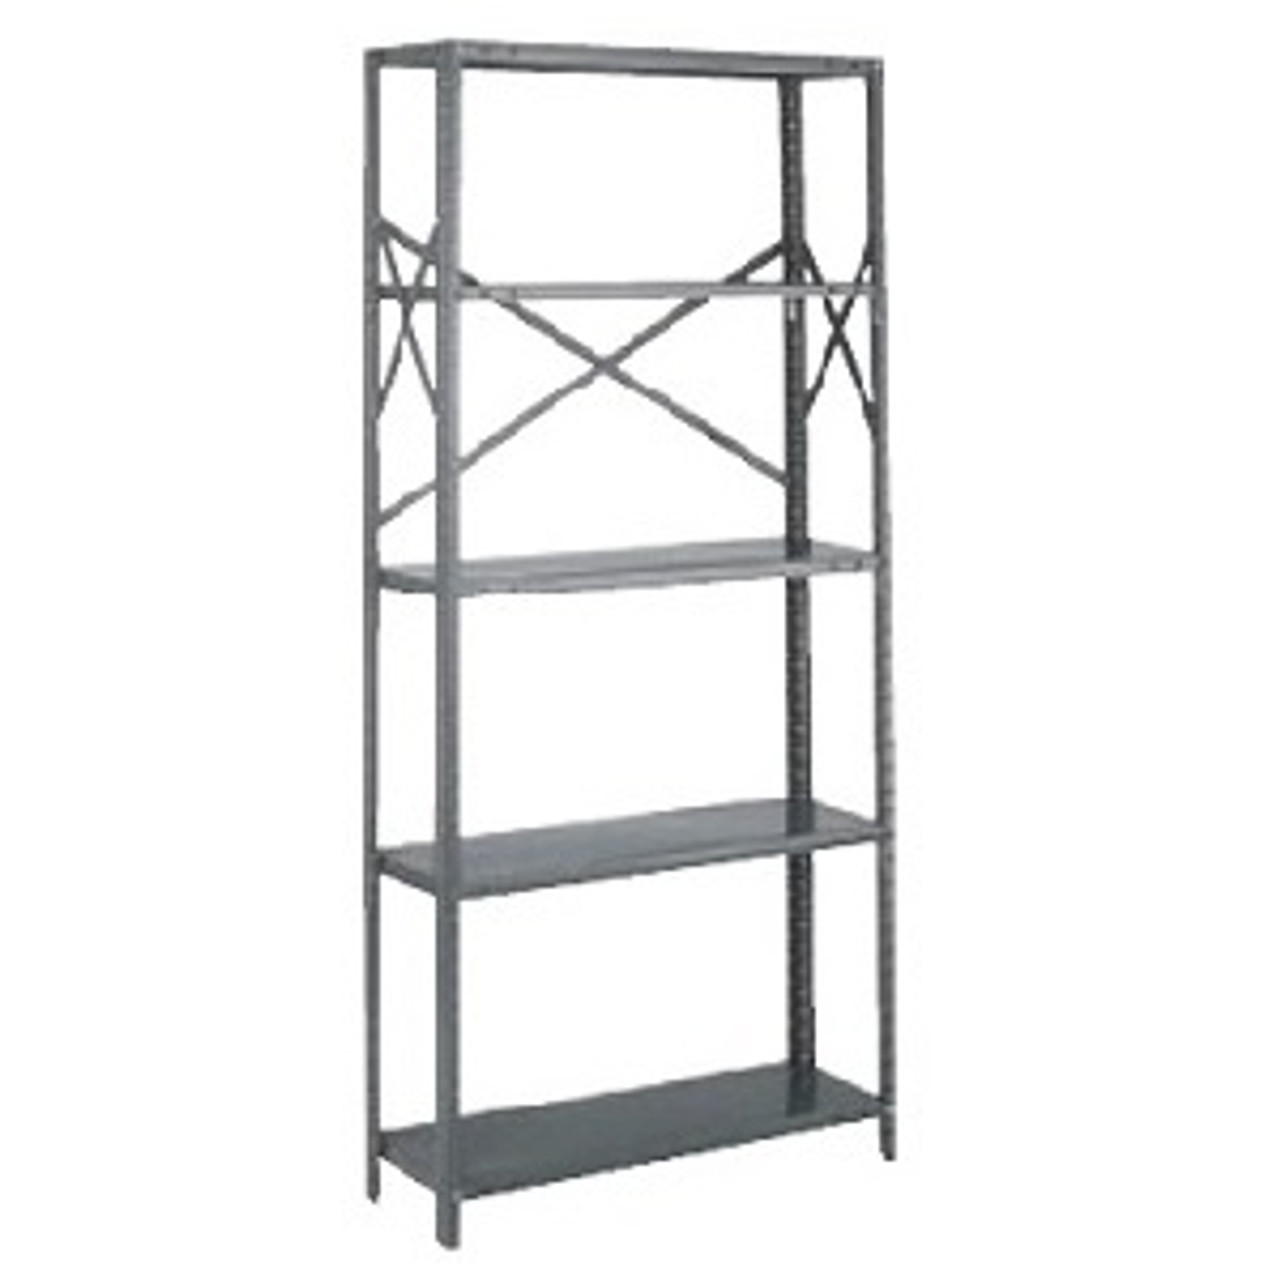 watch cf99a 36382 Products - Industrial Steel Shelving - TriBoro Economy ...